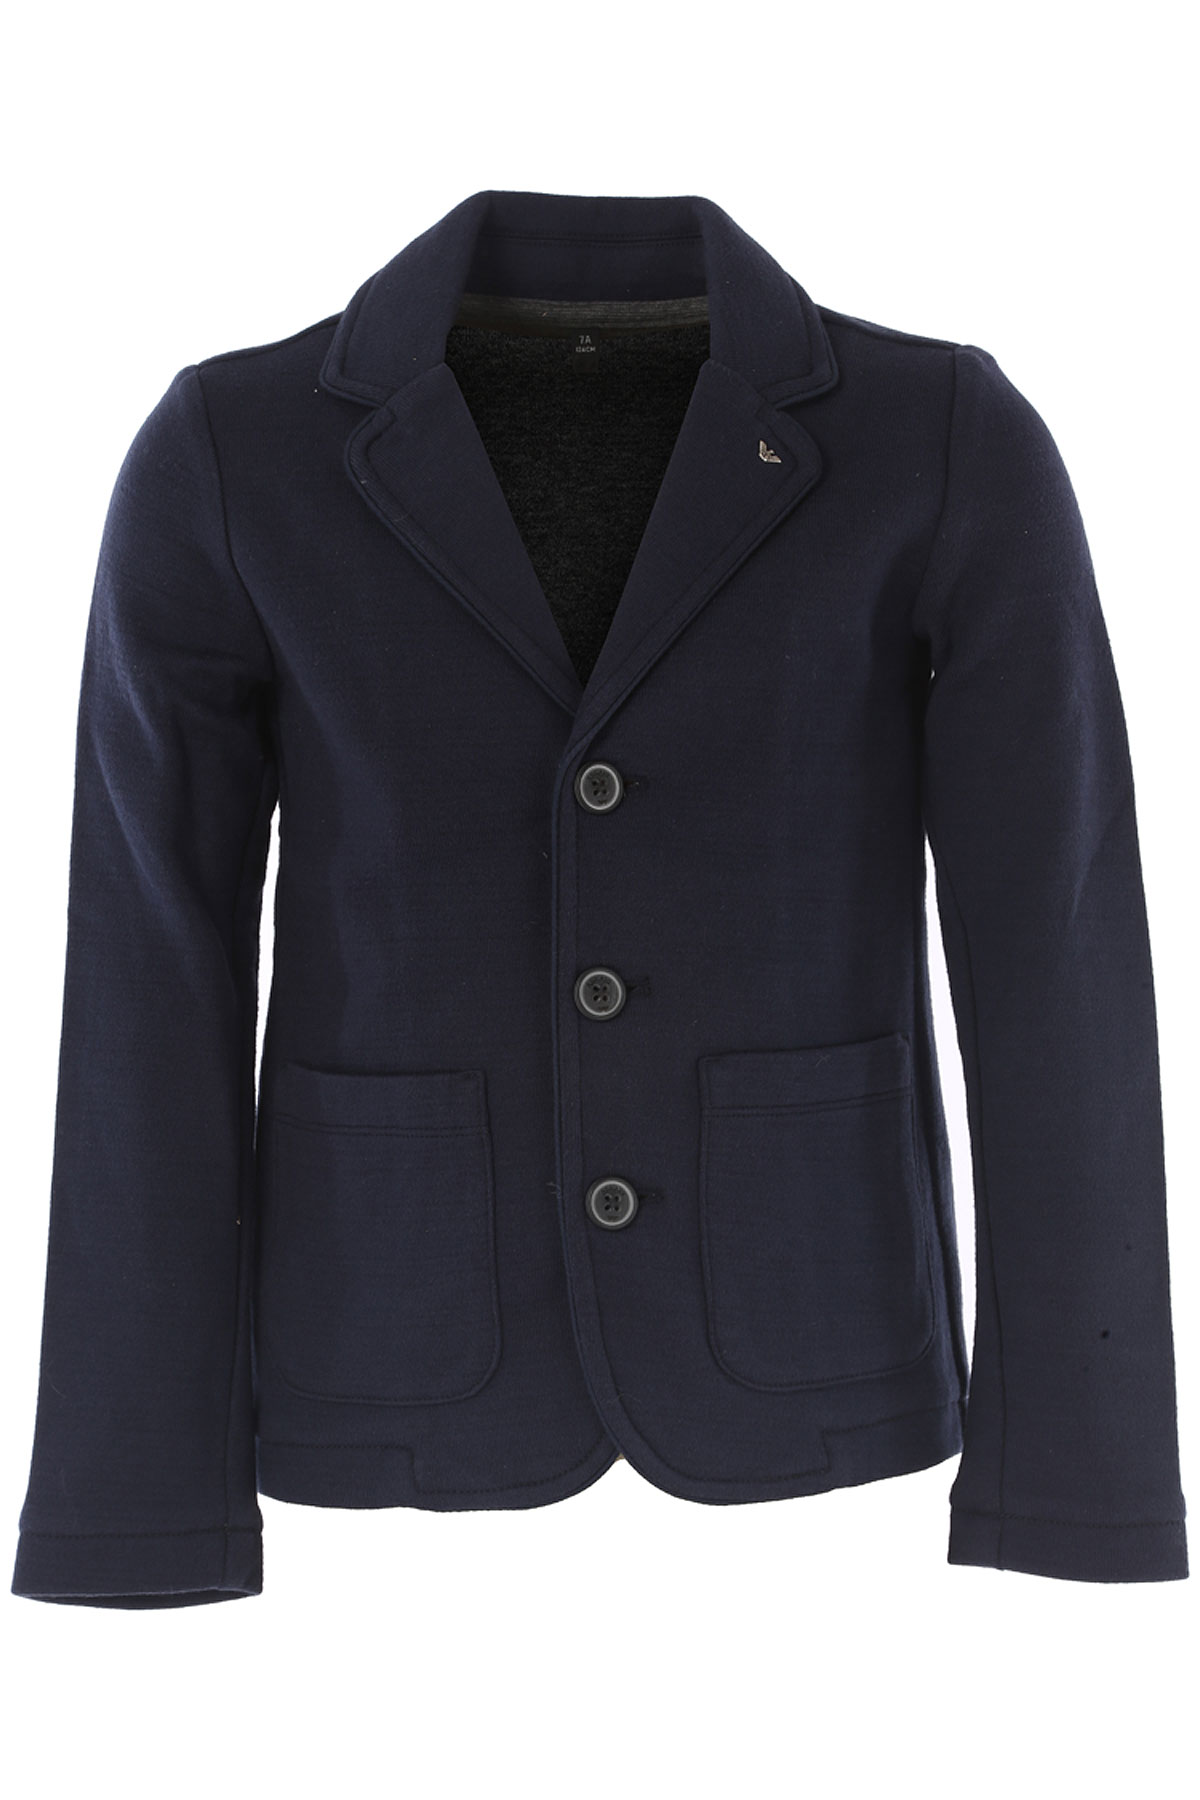 Image of Emporio Armani Kids Jacket for Boys On Sale in Outlet, Blue, Cotton, 2017, 6Y 7Y